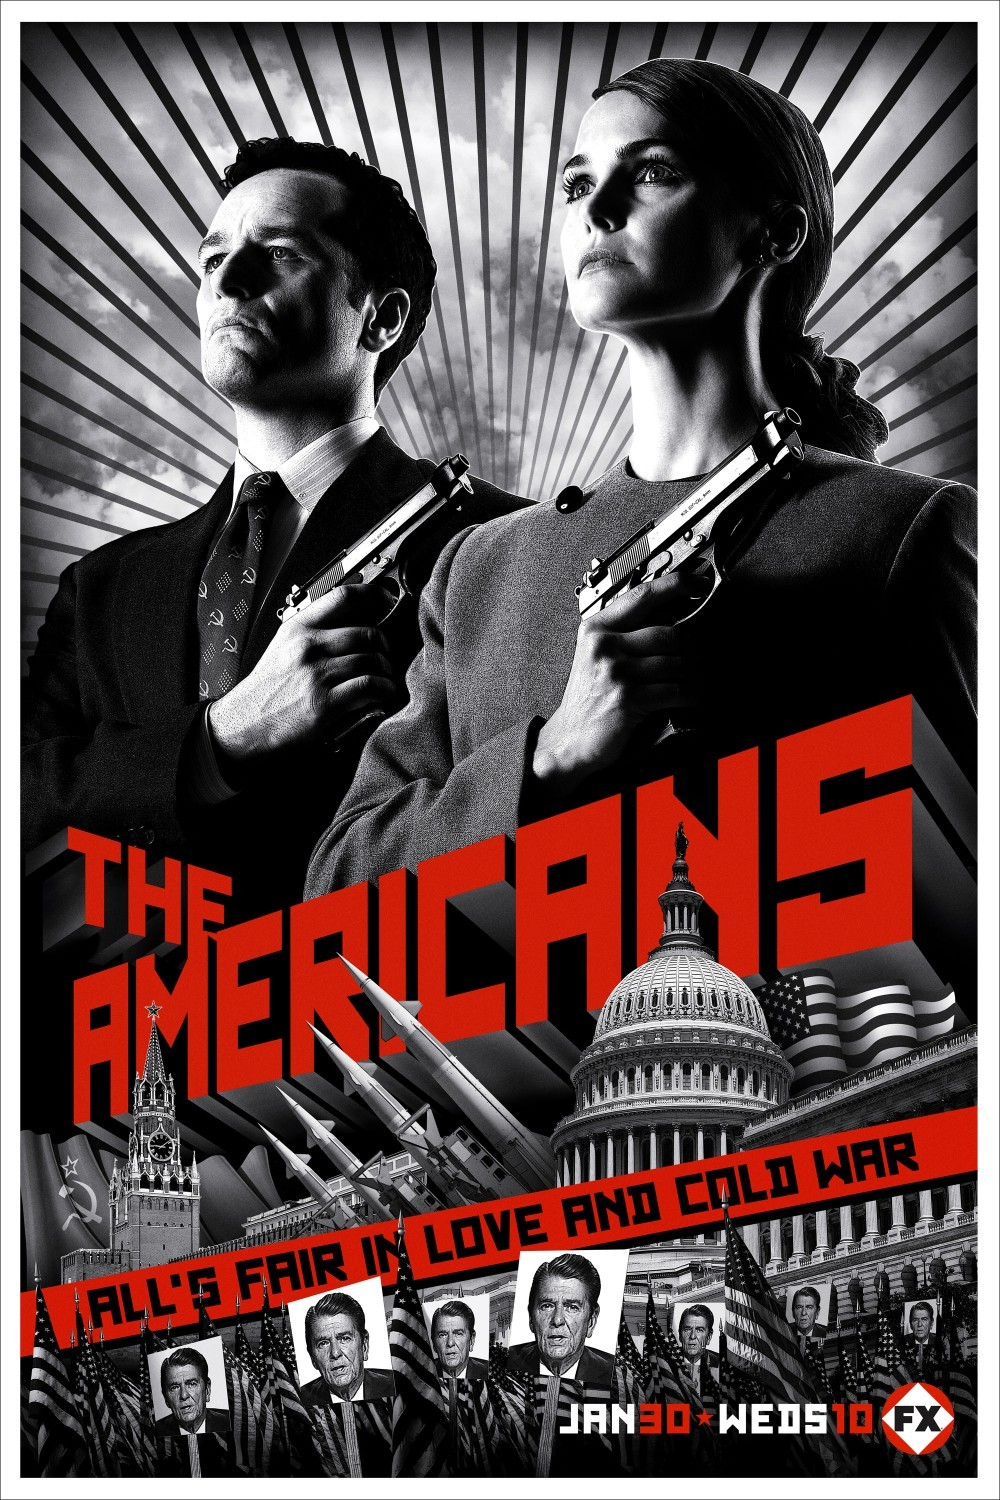 Girls of `The Americans s02 - 2014 HD 720/1080p new images